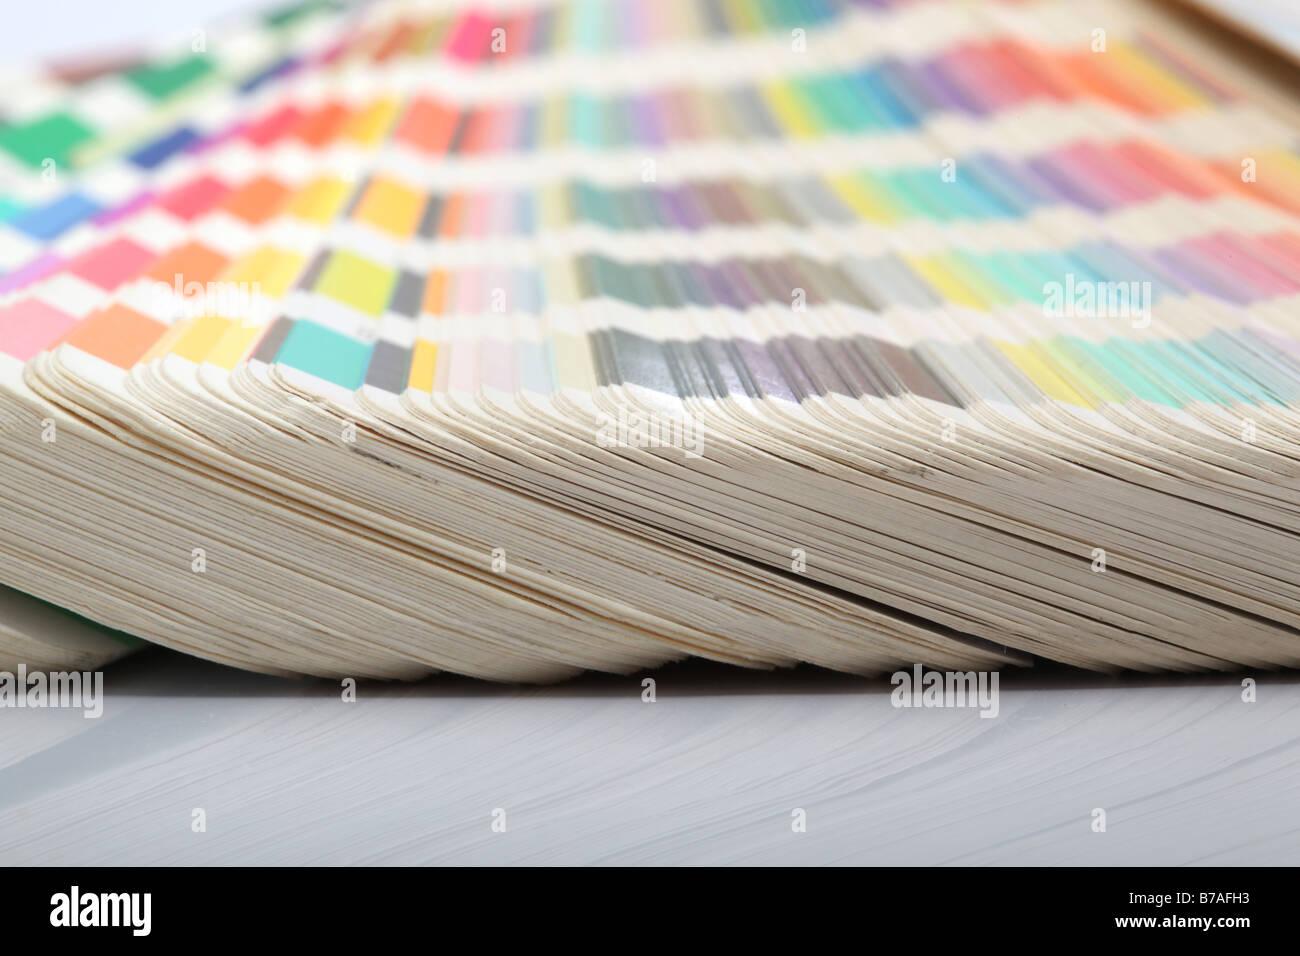 detail from pantone color scale samples with reflection lithography printing industry - Stock Image